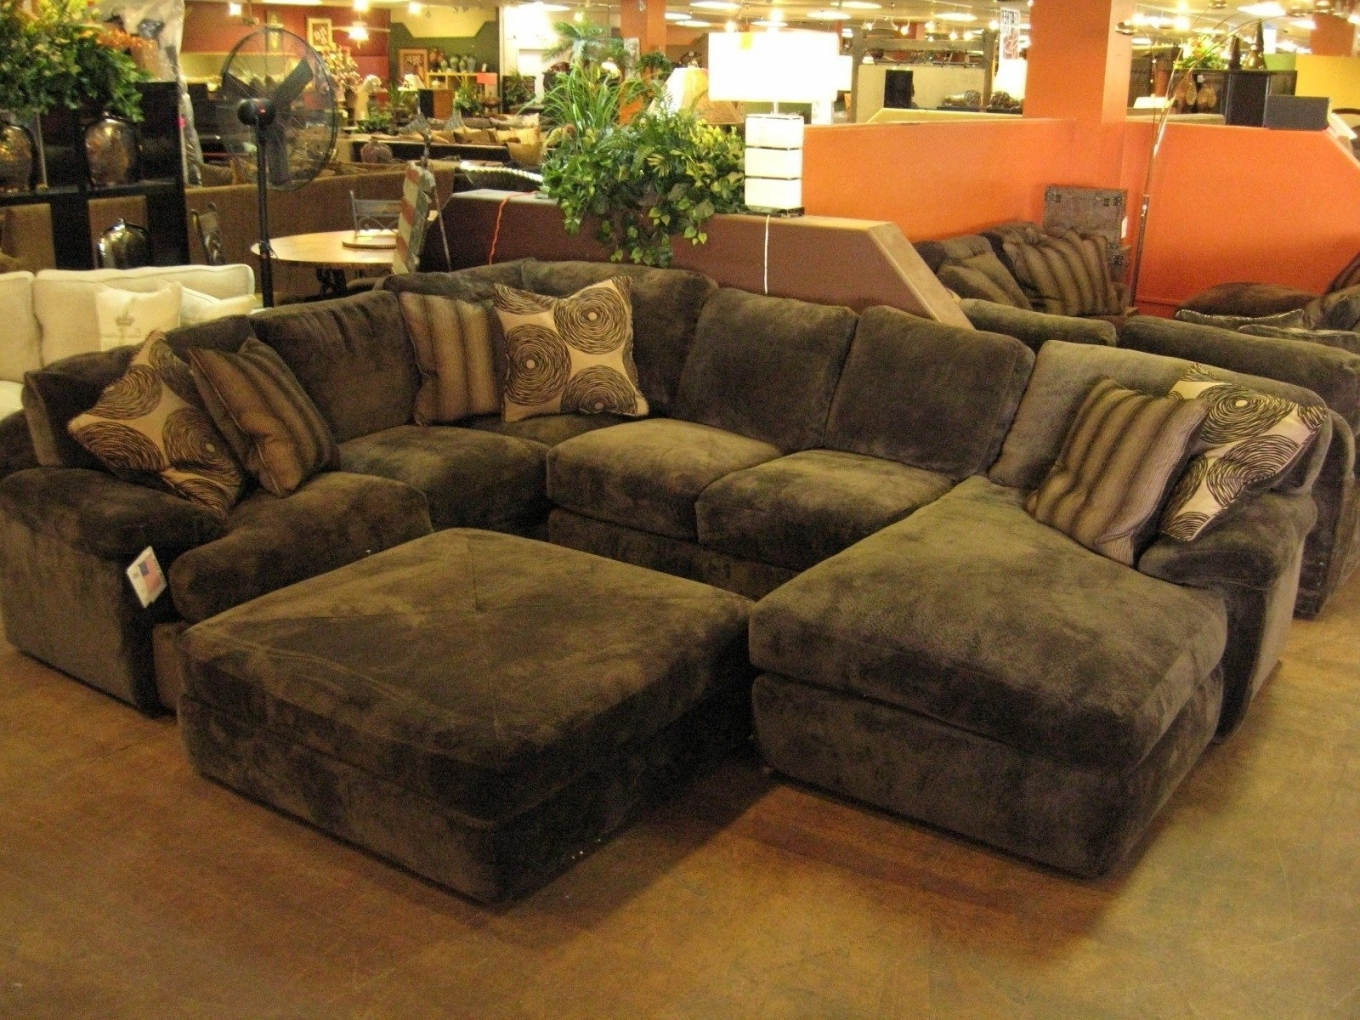 Newest Comfortable Sectional Sofas Pertaining To Comfortable Sectional Sofa (View 14 of 20)